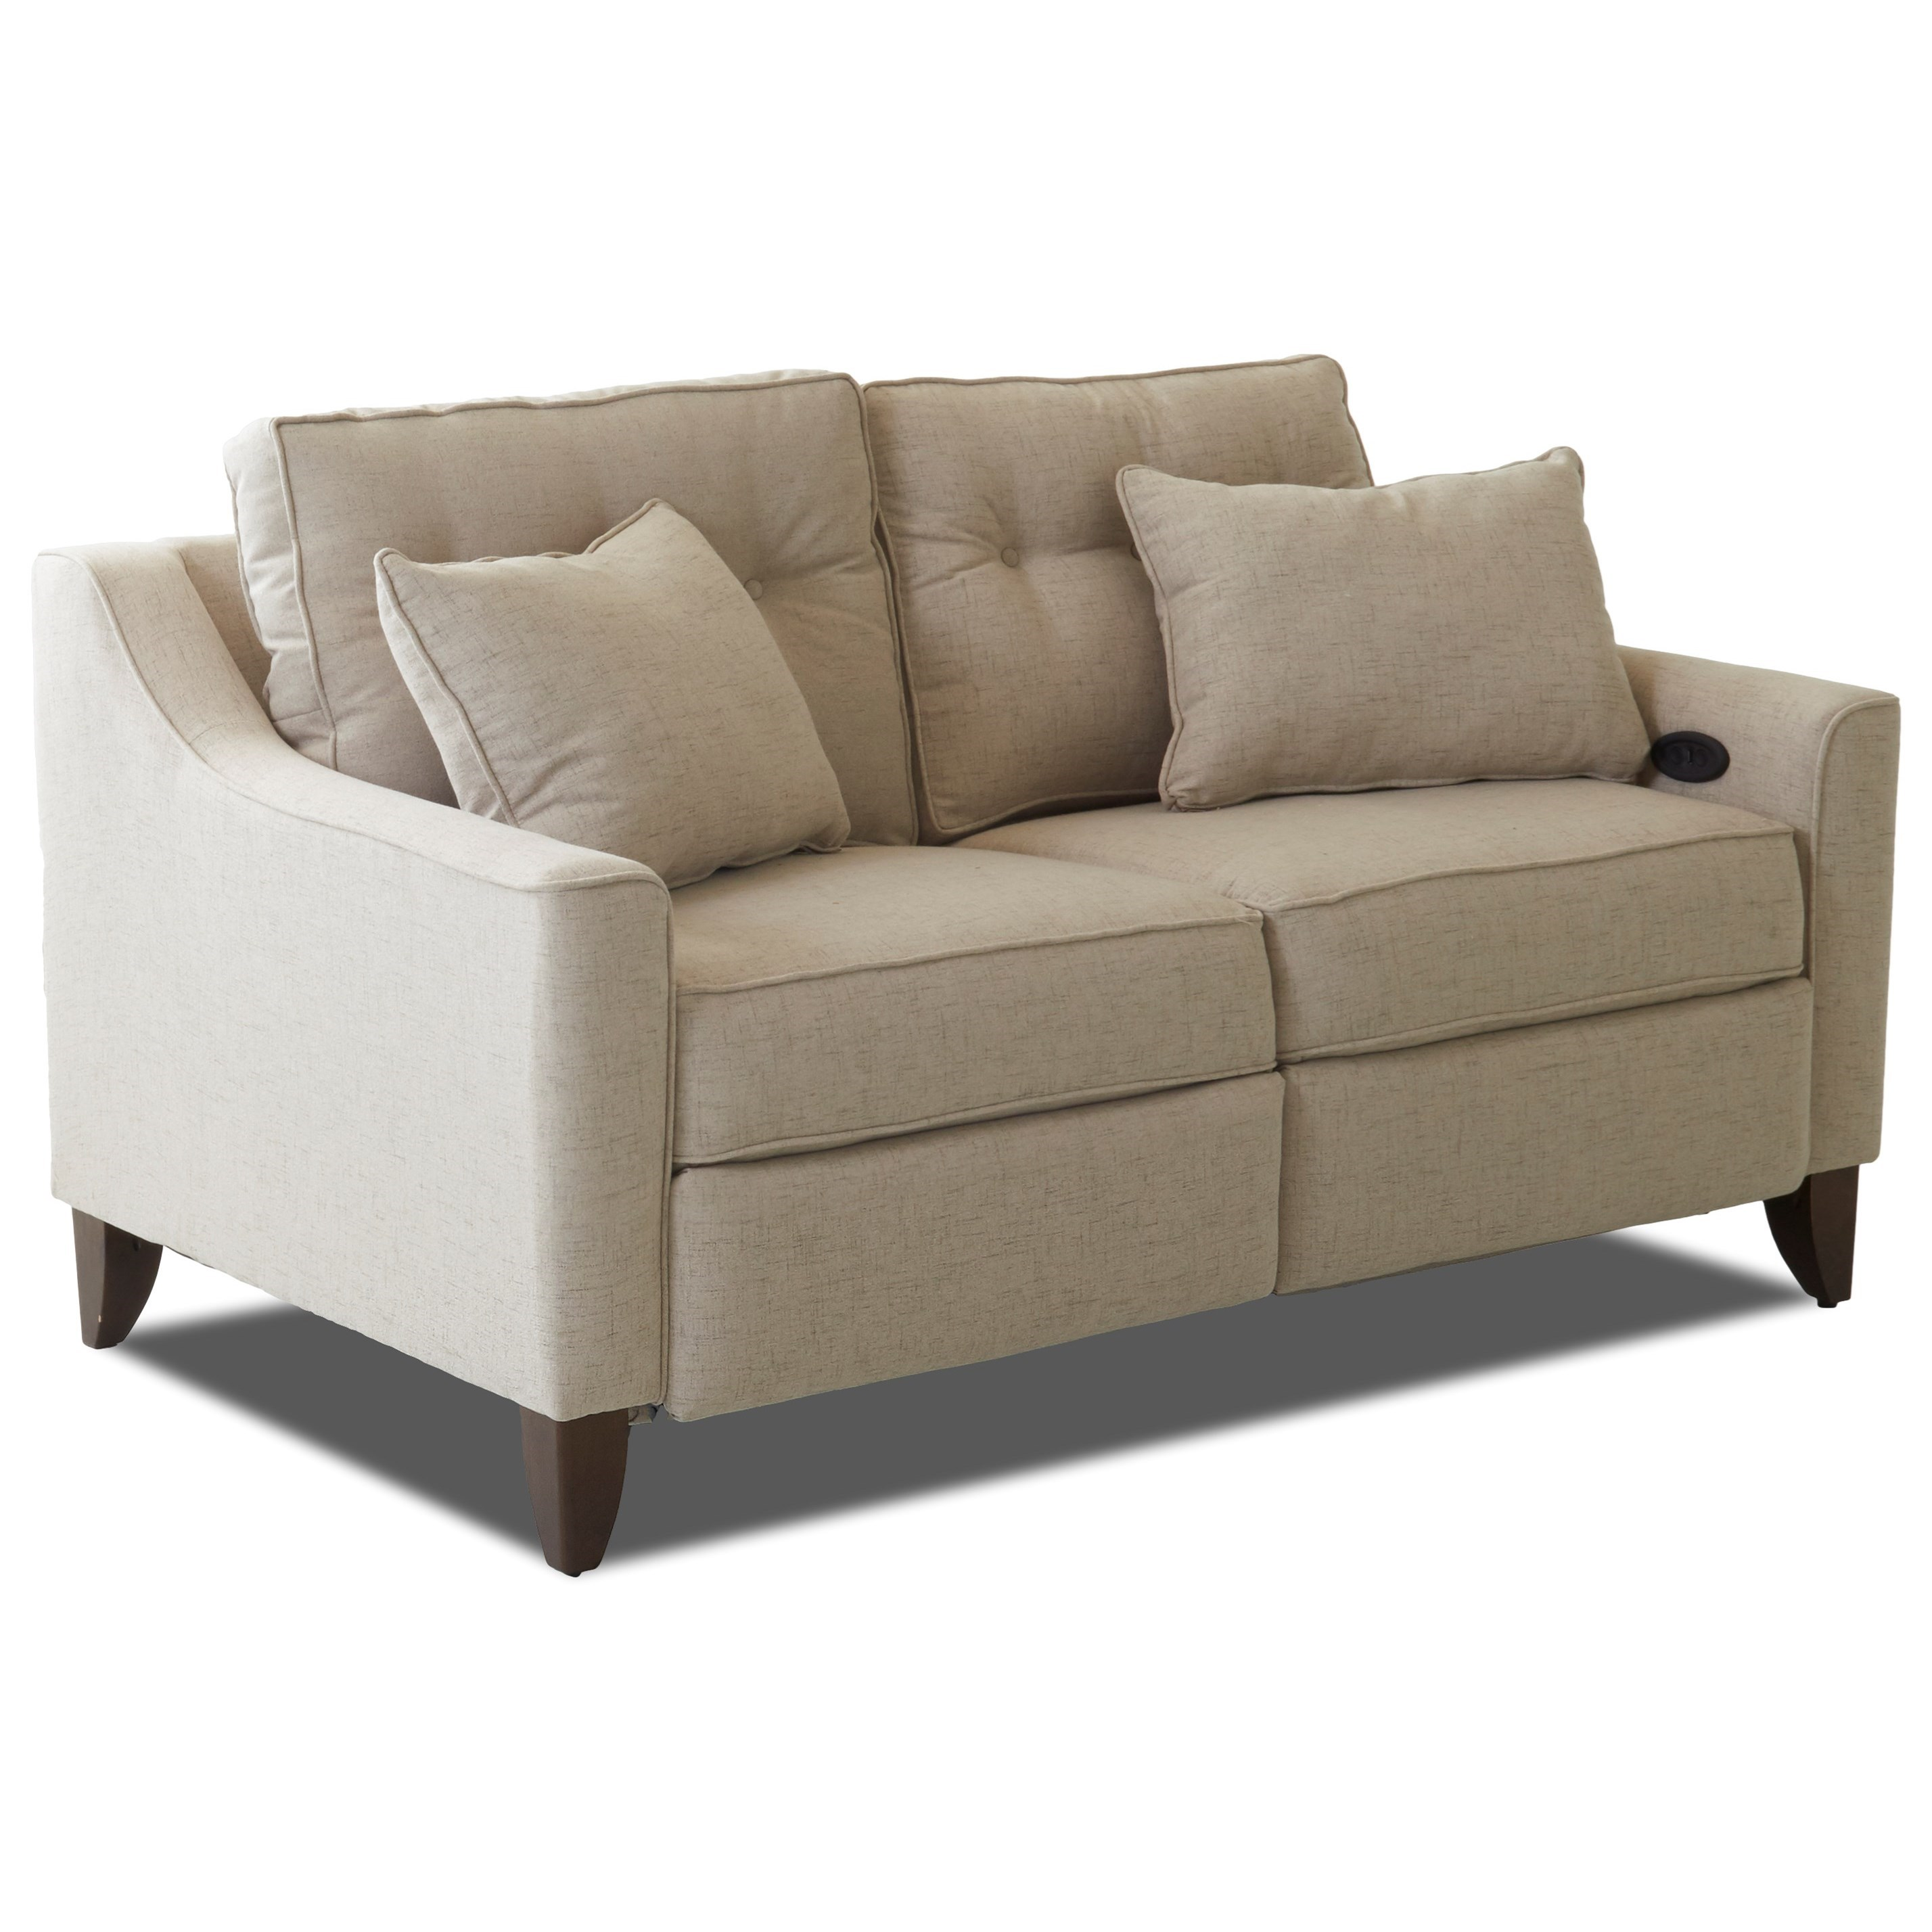 Ashley Furniture Danville Va: Trisha Yearwood Home Collection By Klaussner Audrina 31603